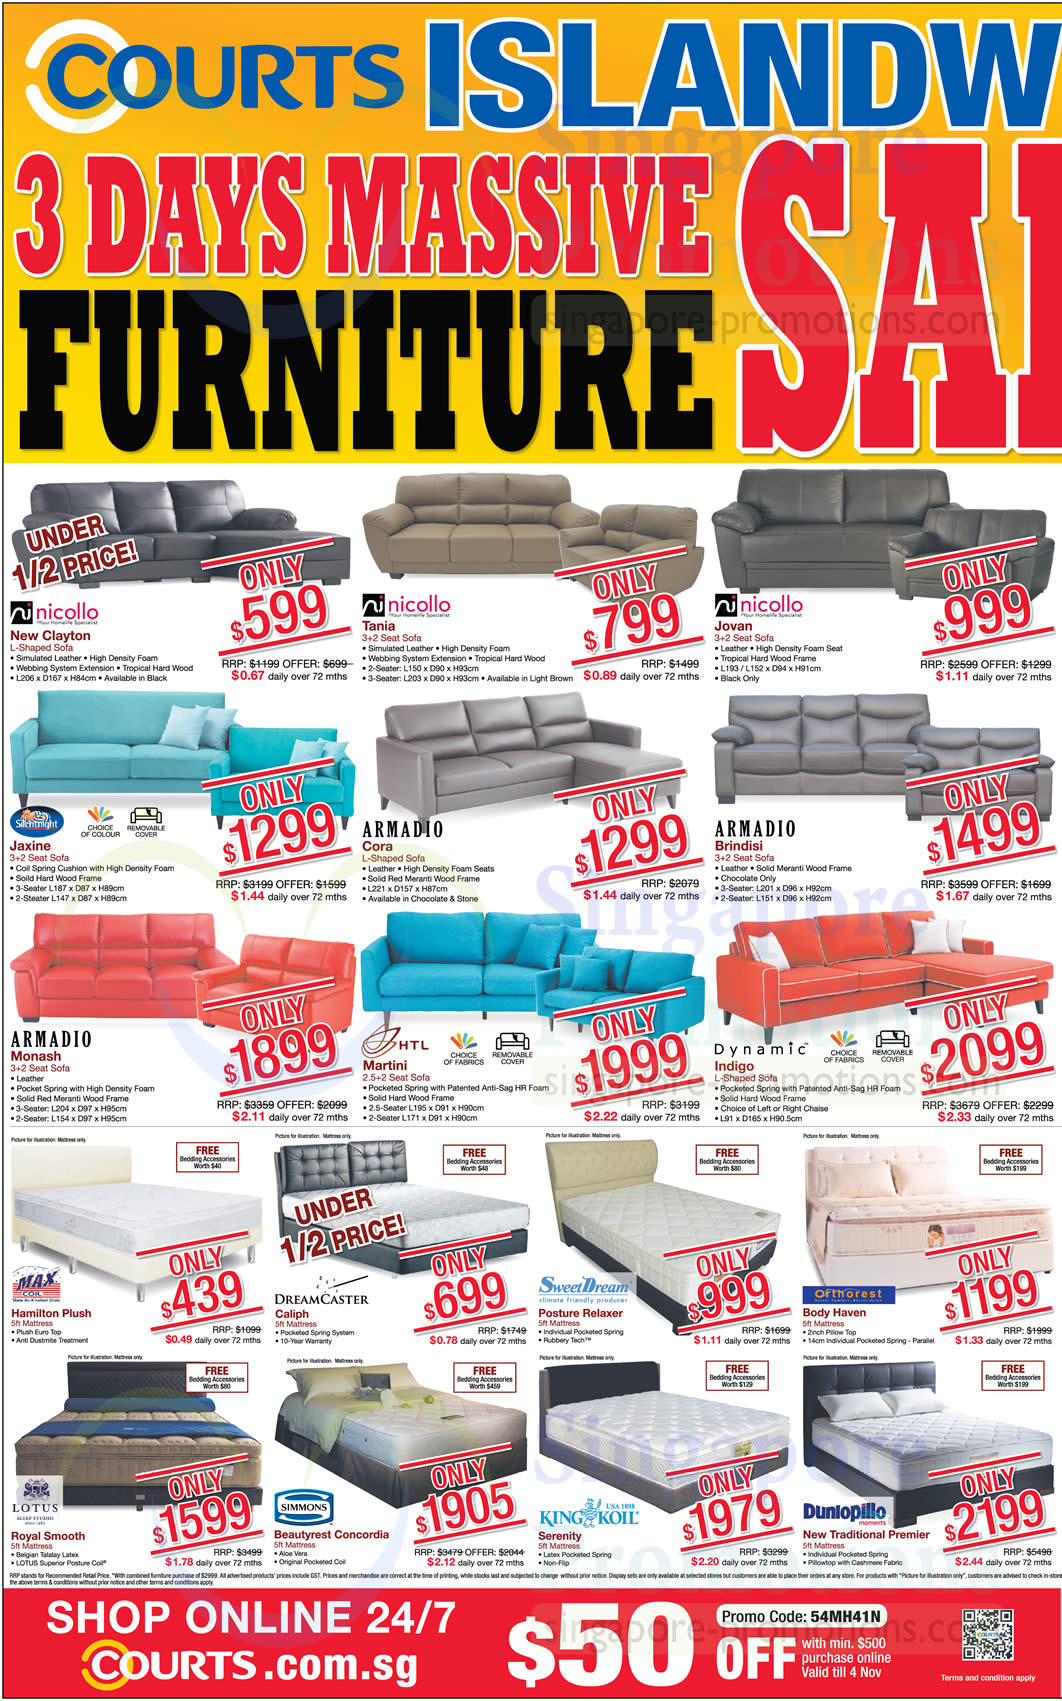 Courts Massive Sale All Outlets 2 4 Nov 2013